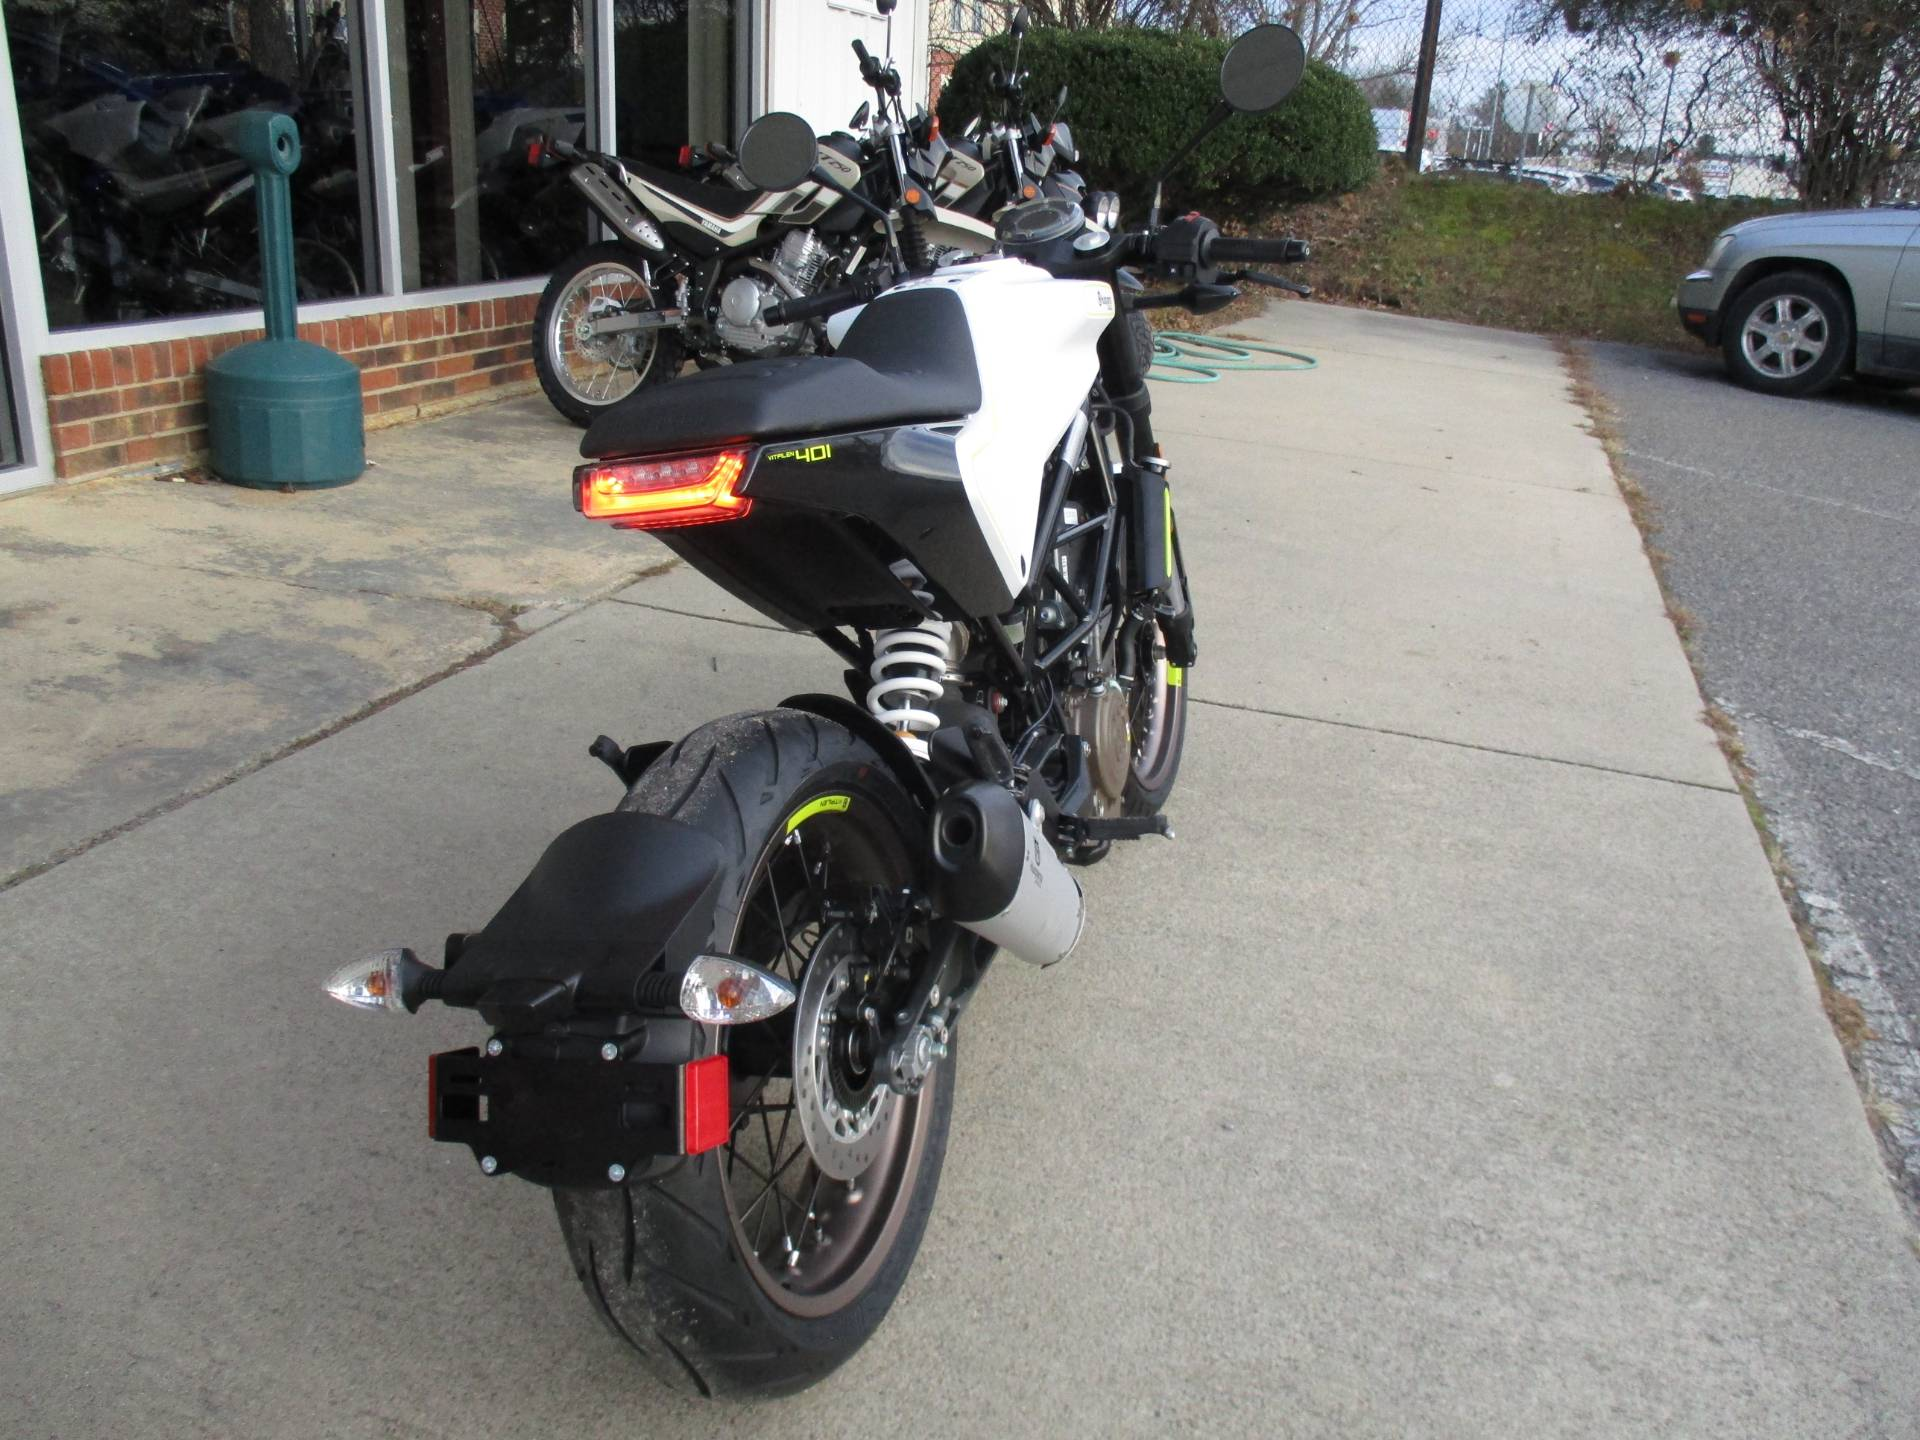 2019 Husqvarna Vitpilen 401 in Hendersonville, North Carolina - Photo 3